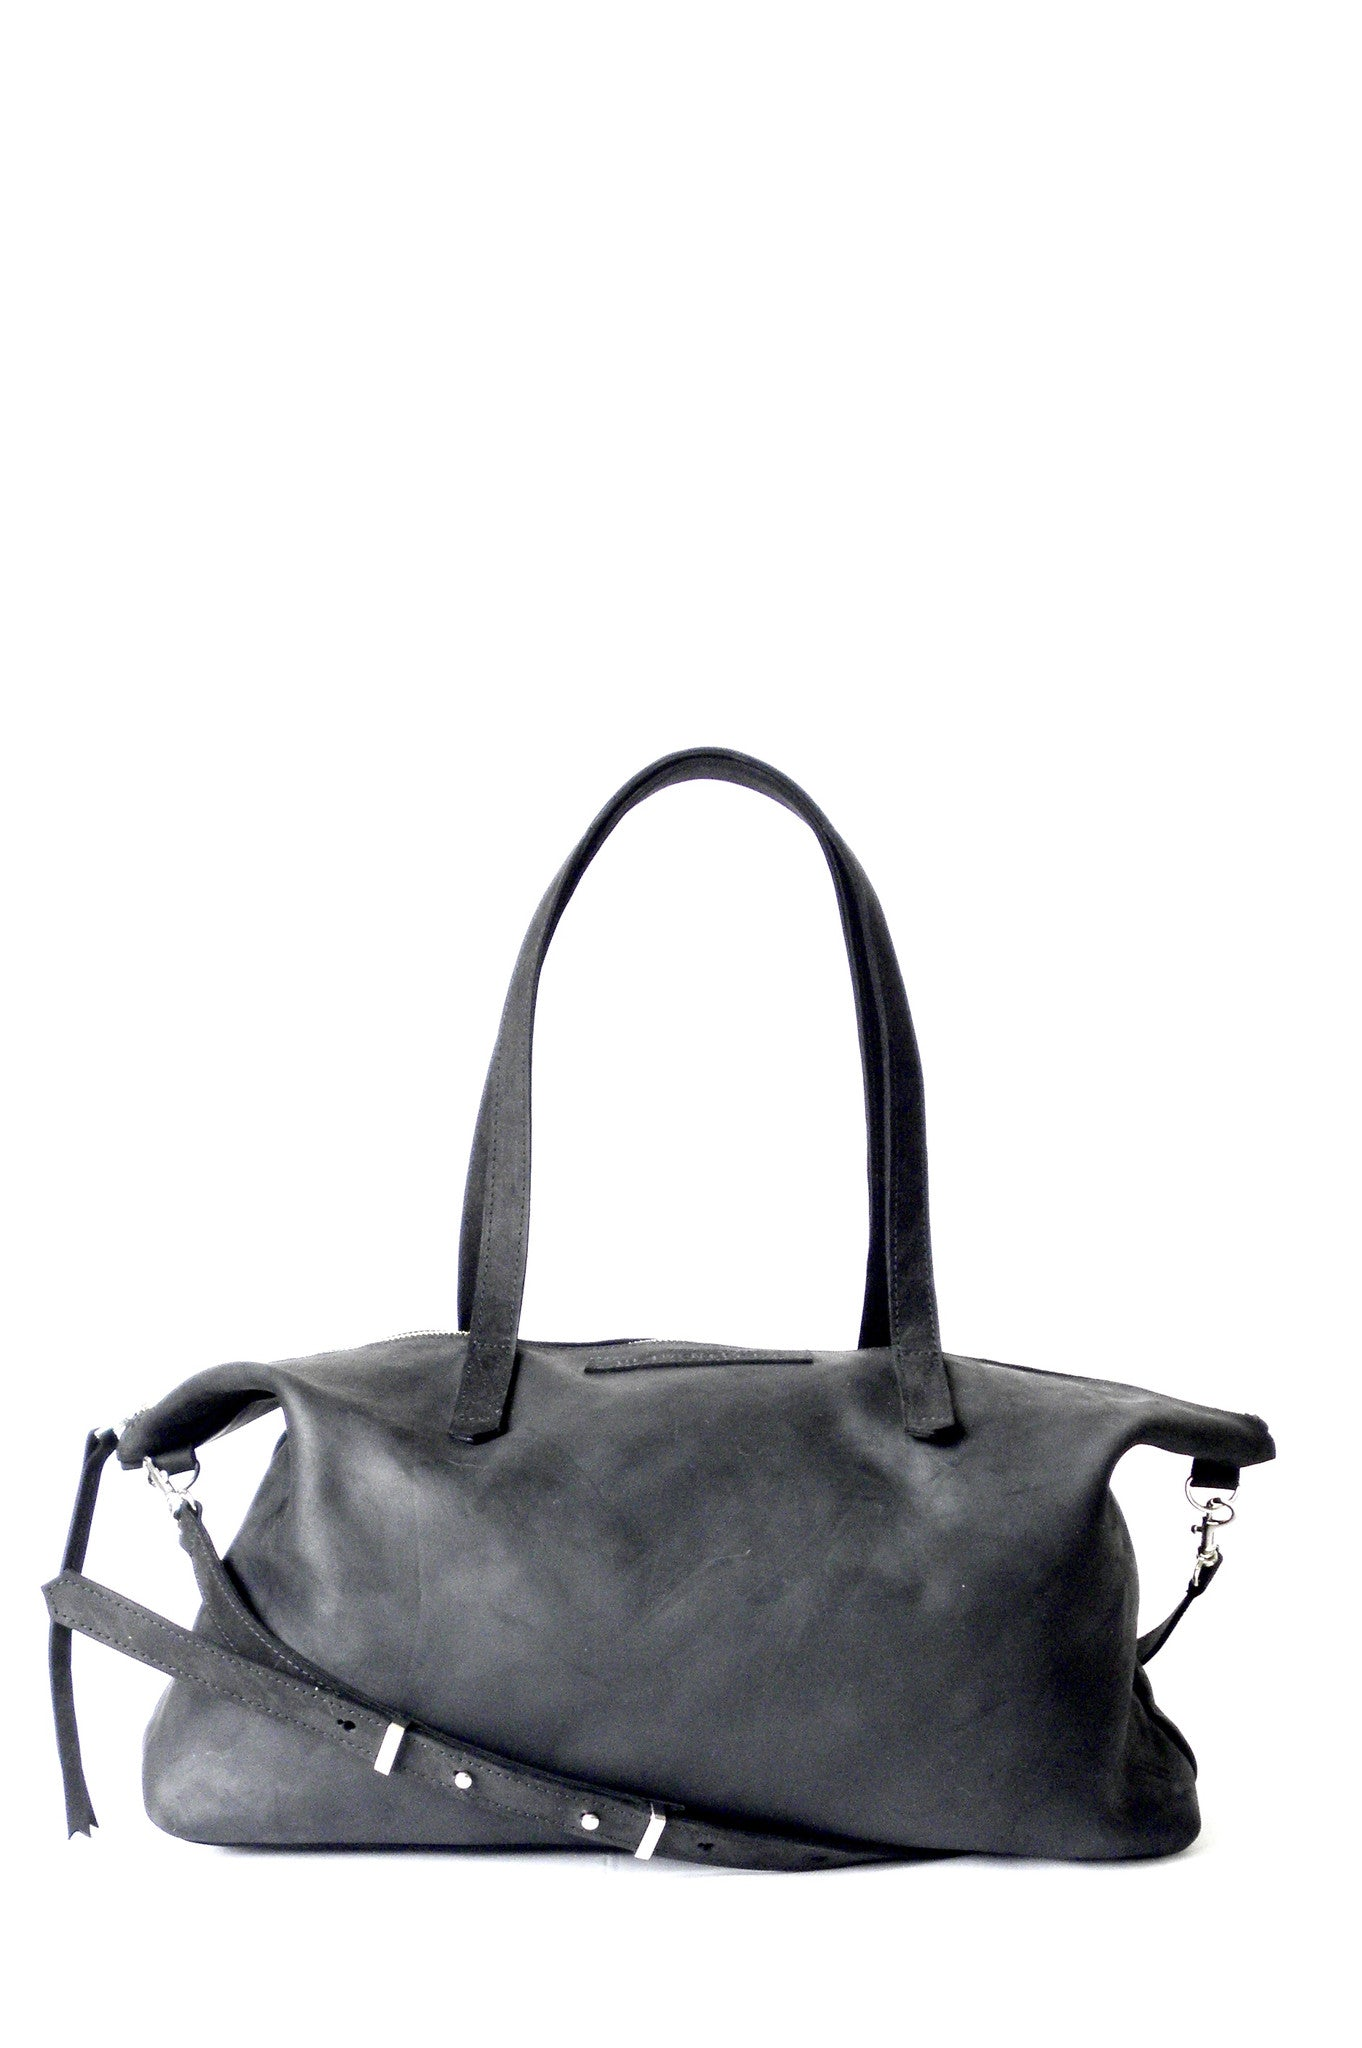 #25 Carryall / Motorcycle Black